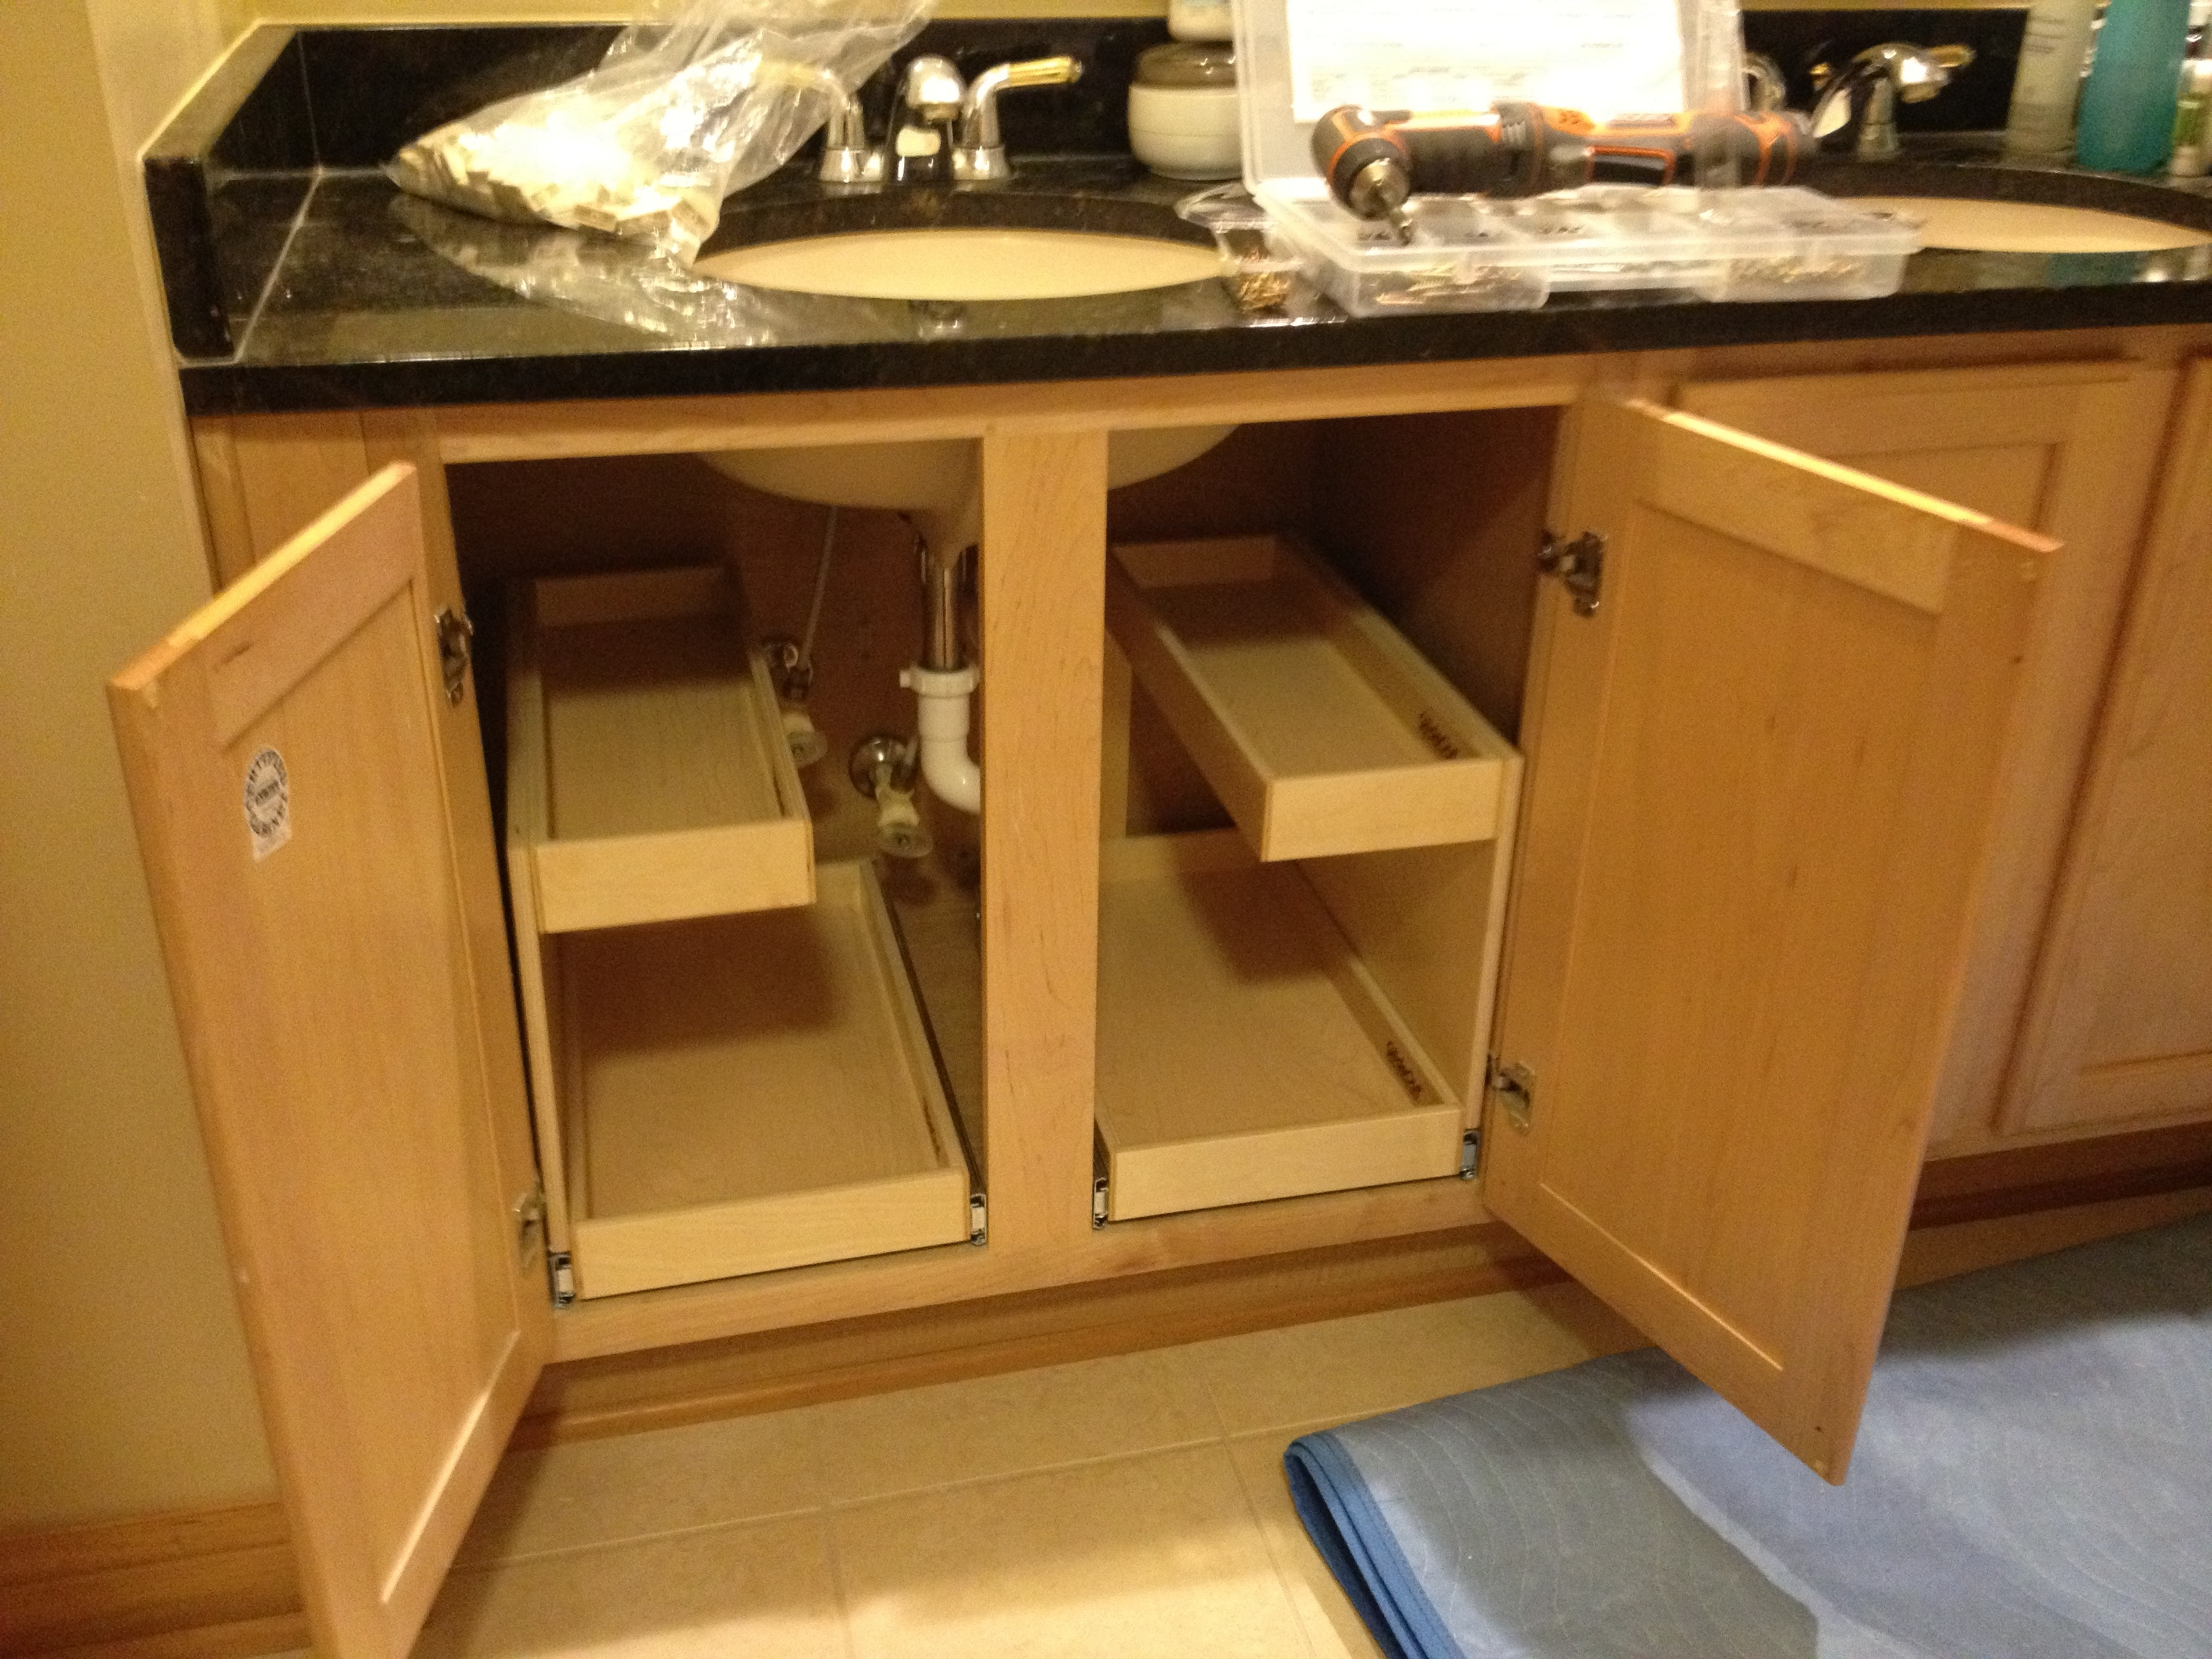 Kitchen Bathroom Cabinet Pull Out